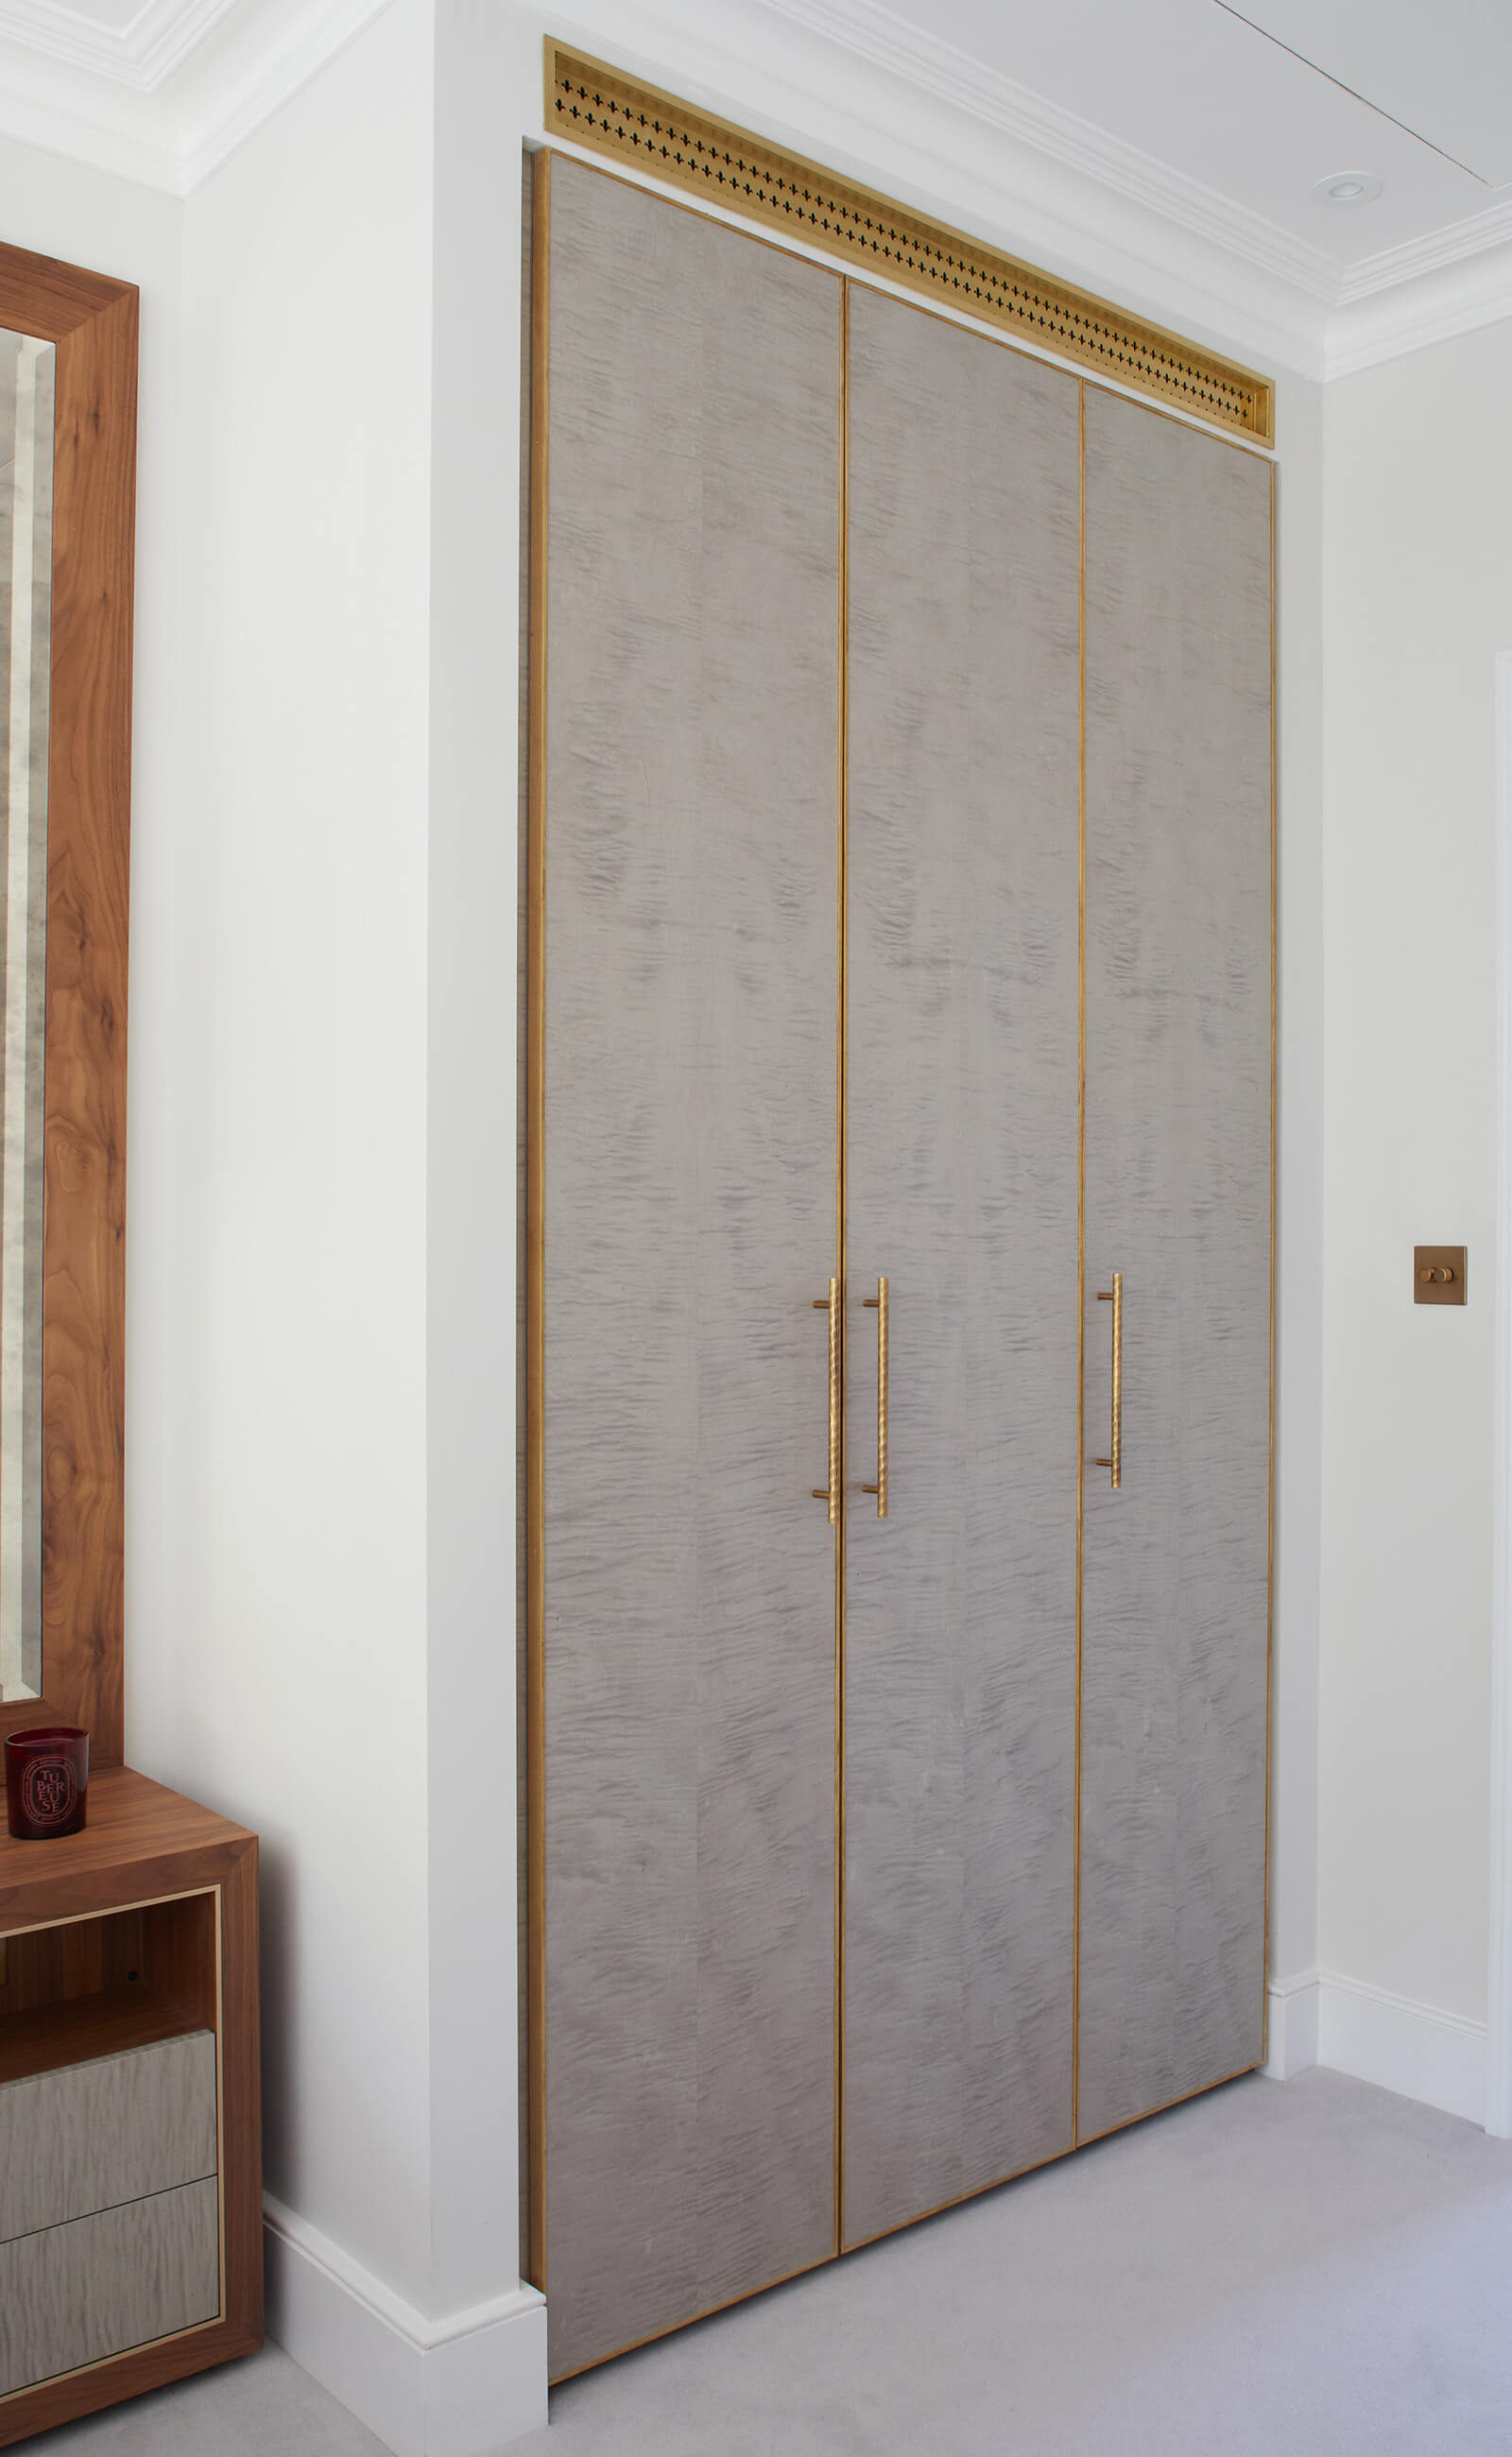 Custom built in wardrobes in sycamore with brass details in a calm serene bedroom